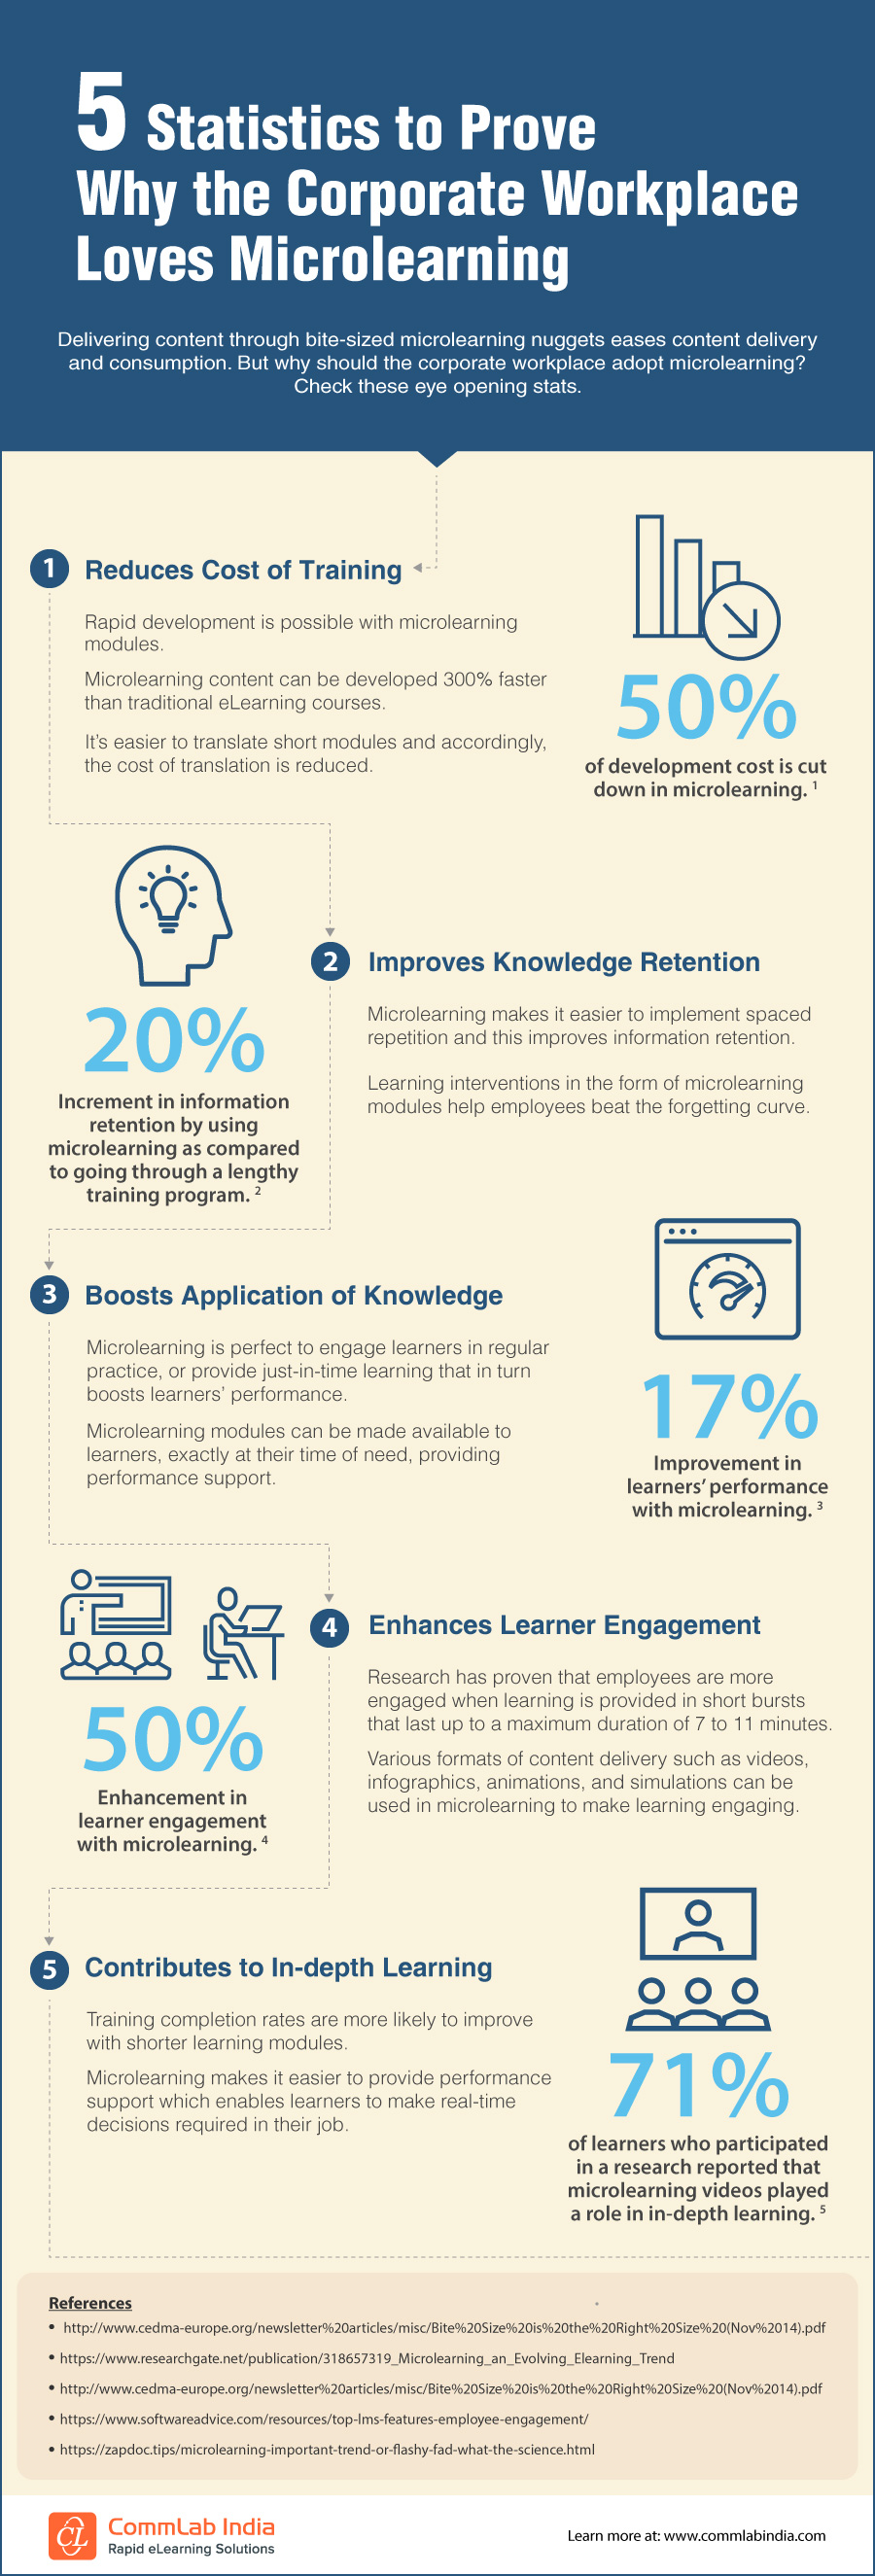 5 Statistics to Prove Why the Corporate Workplace Loves Microlearning [Infographic]